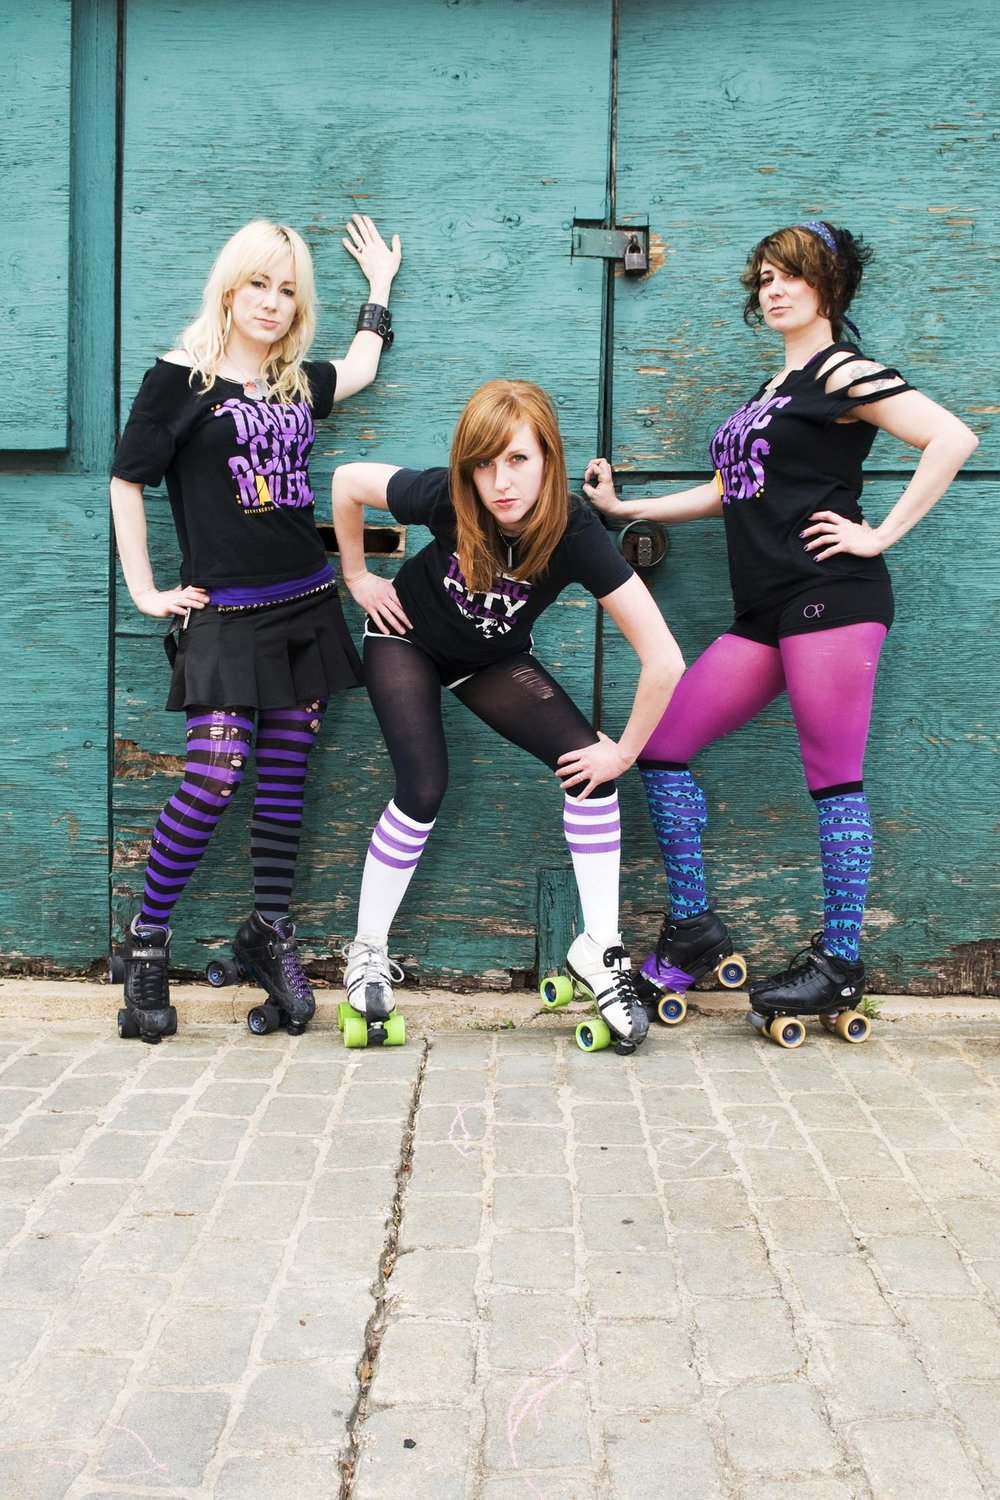 Voodoo Lily, Acute Pain and Dixie Thrash of the Tragic City Rollers, Birmingham, Alabama